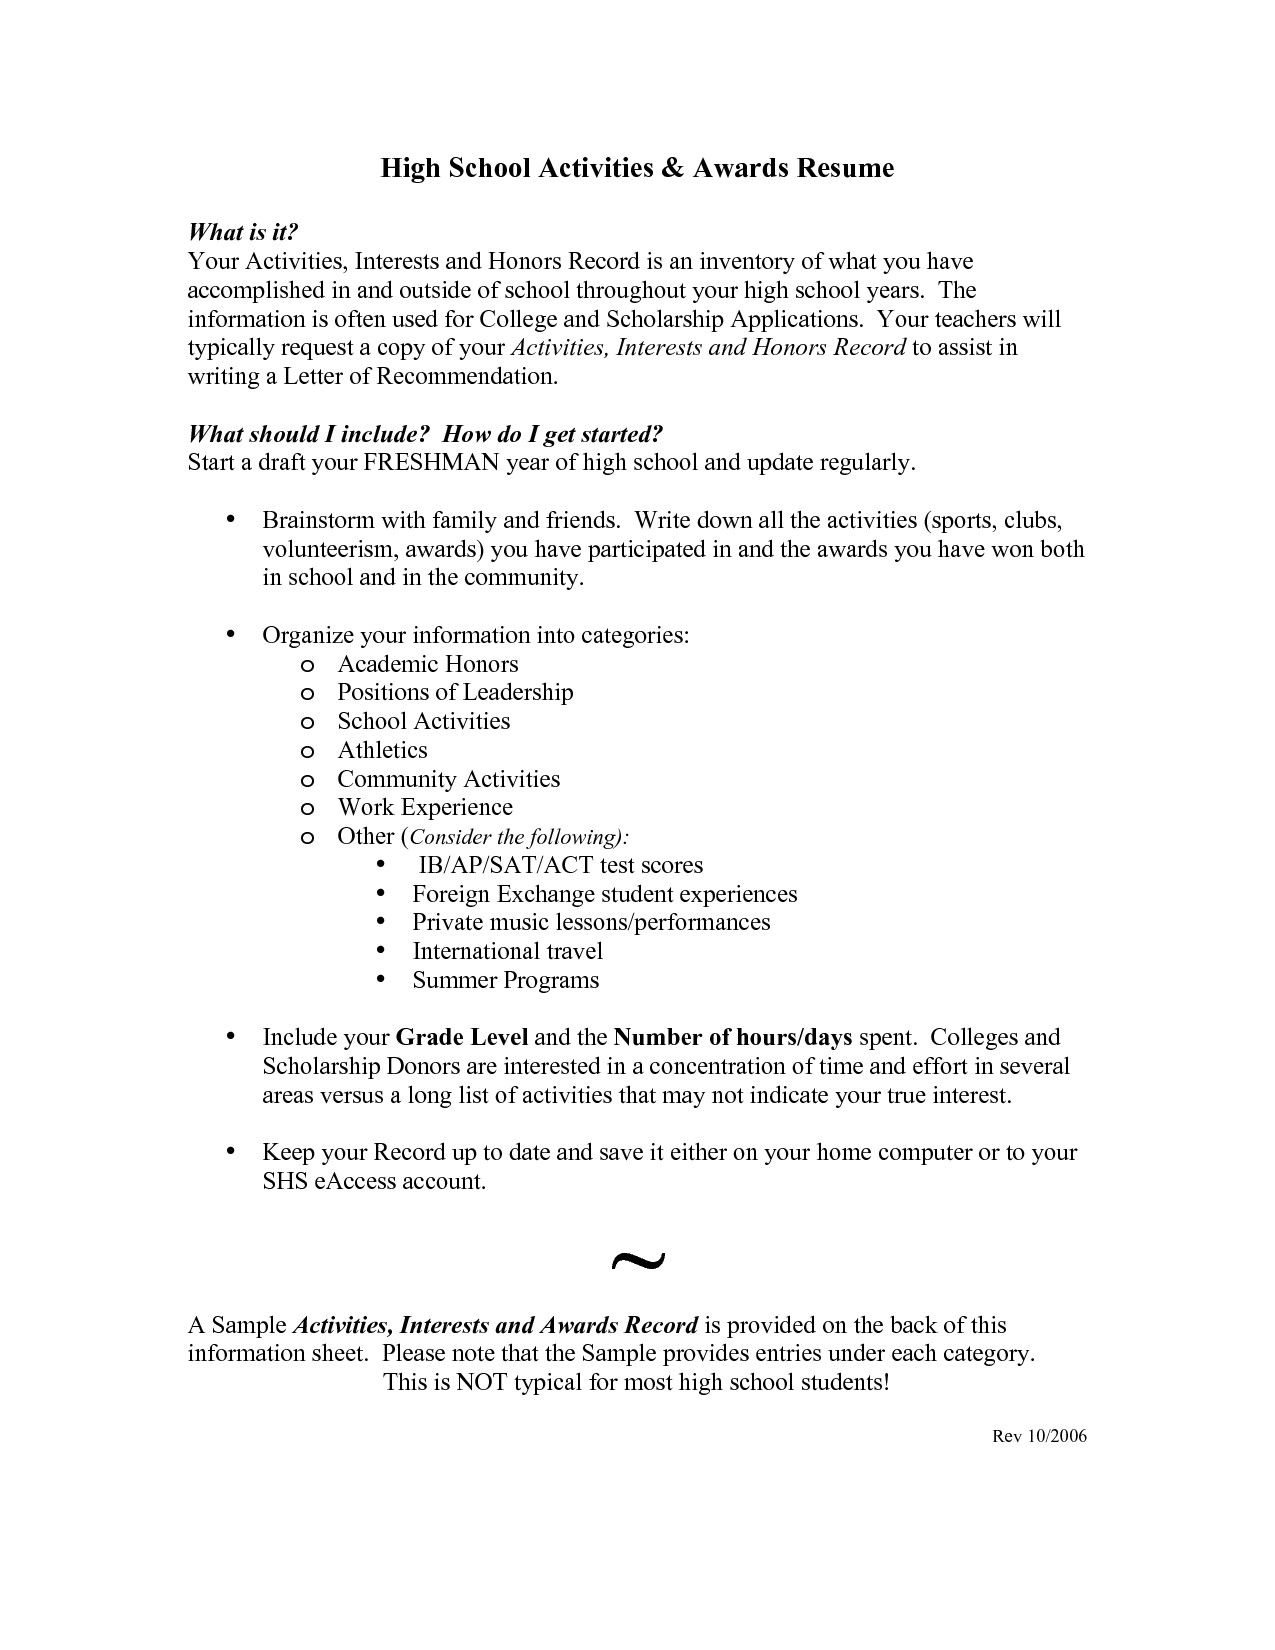 Groß High School Student Resume for College Example Resume